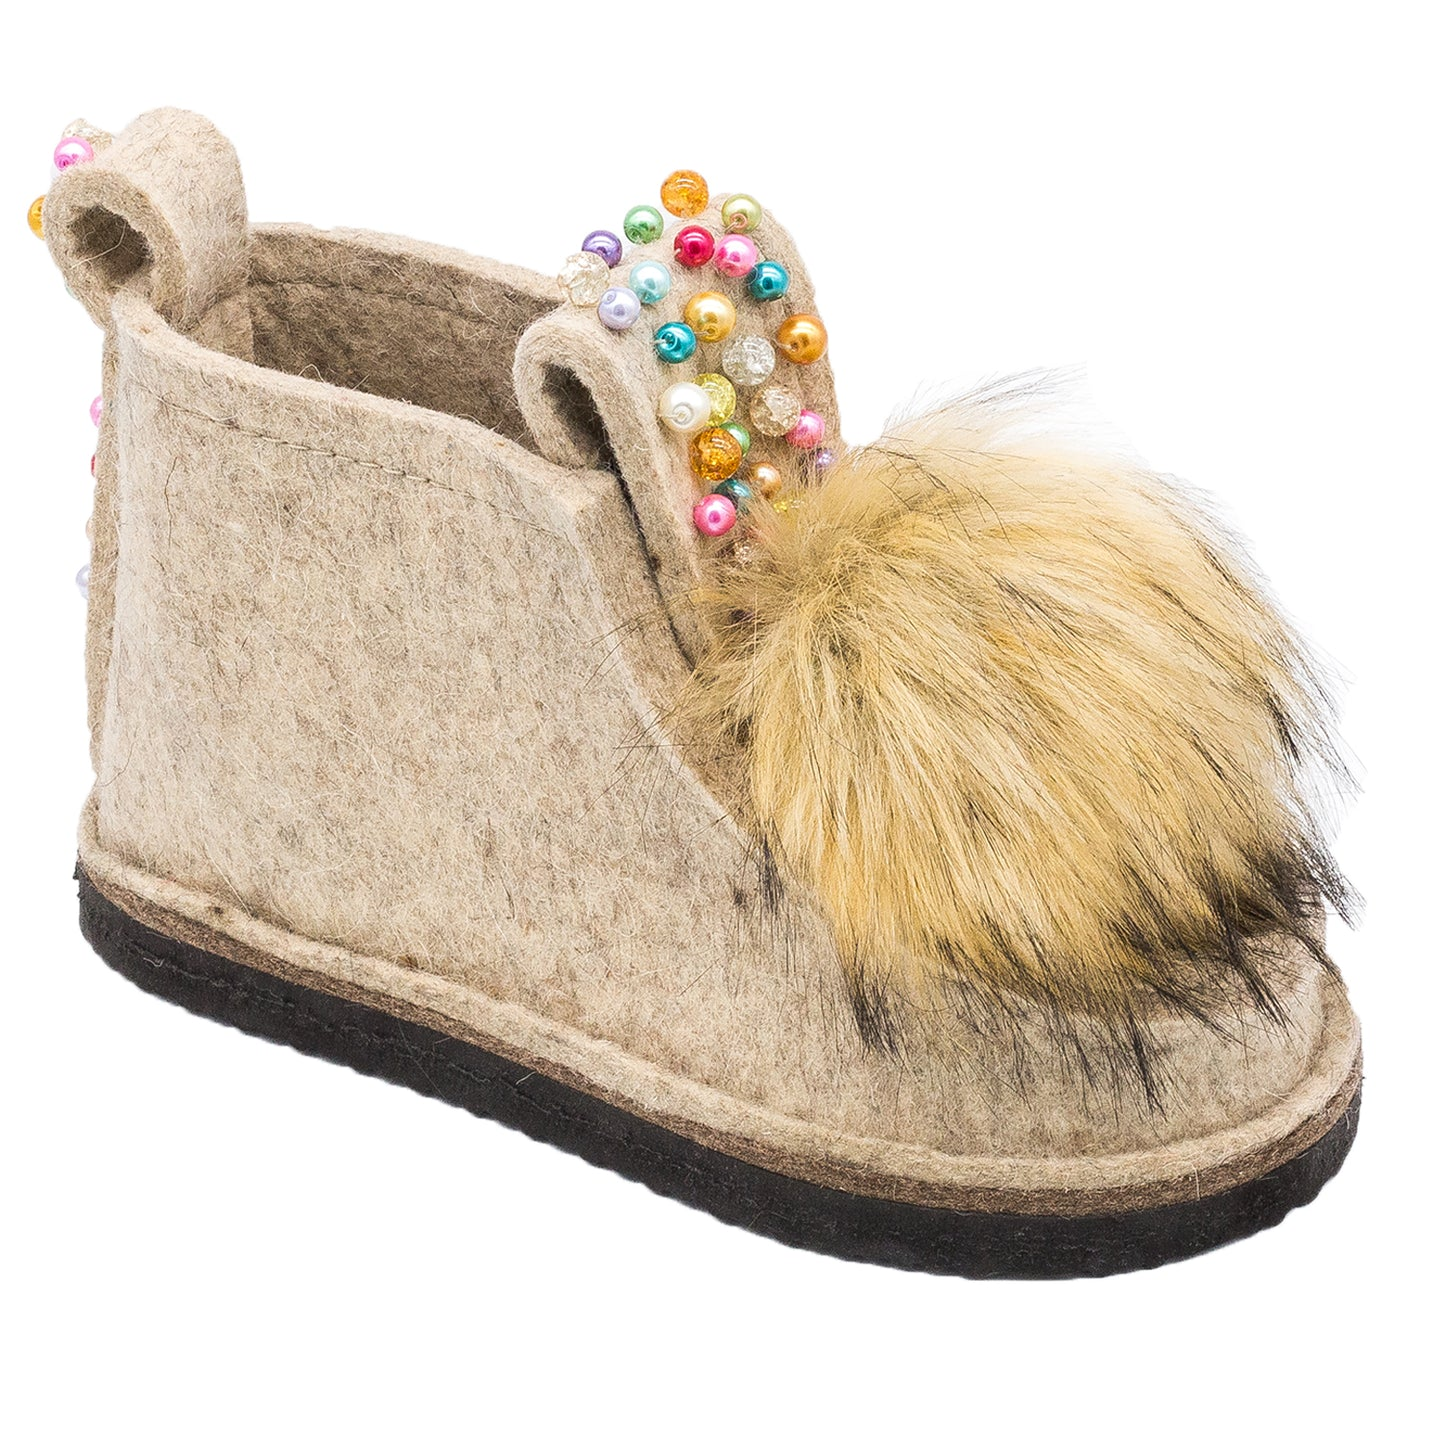 Decorated Classic Boot with Pom-Pom